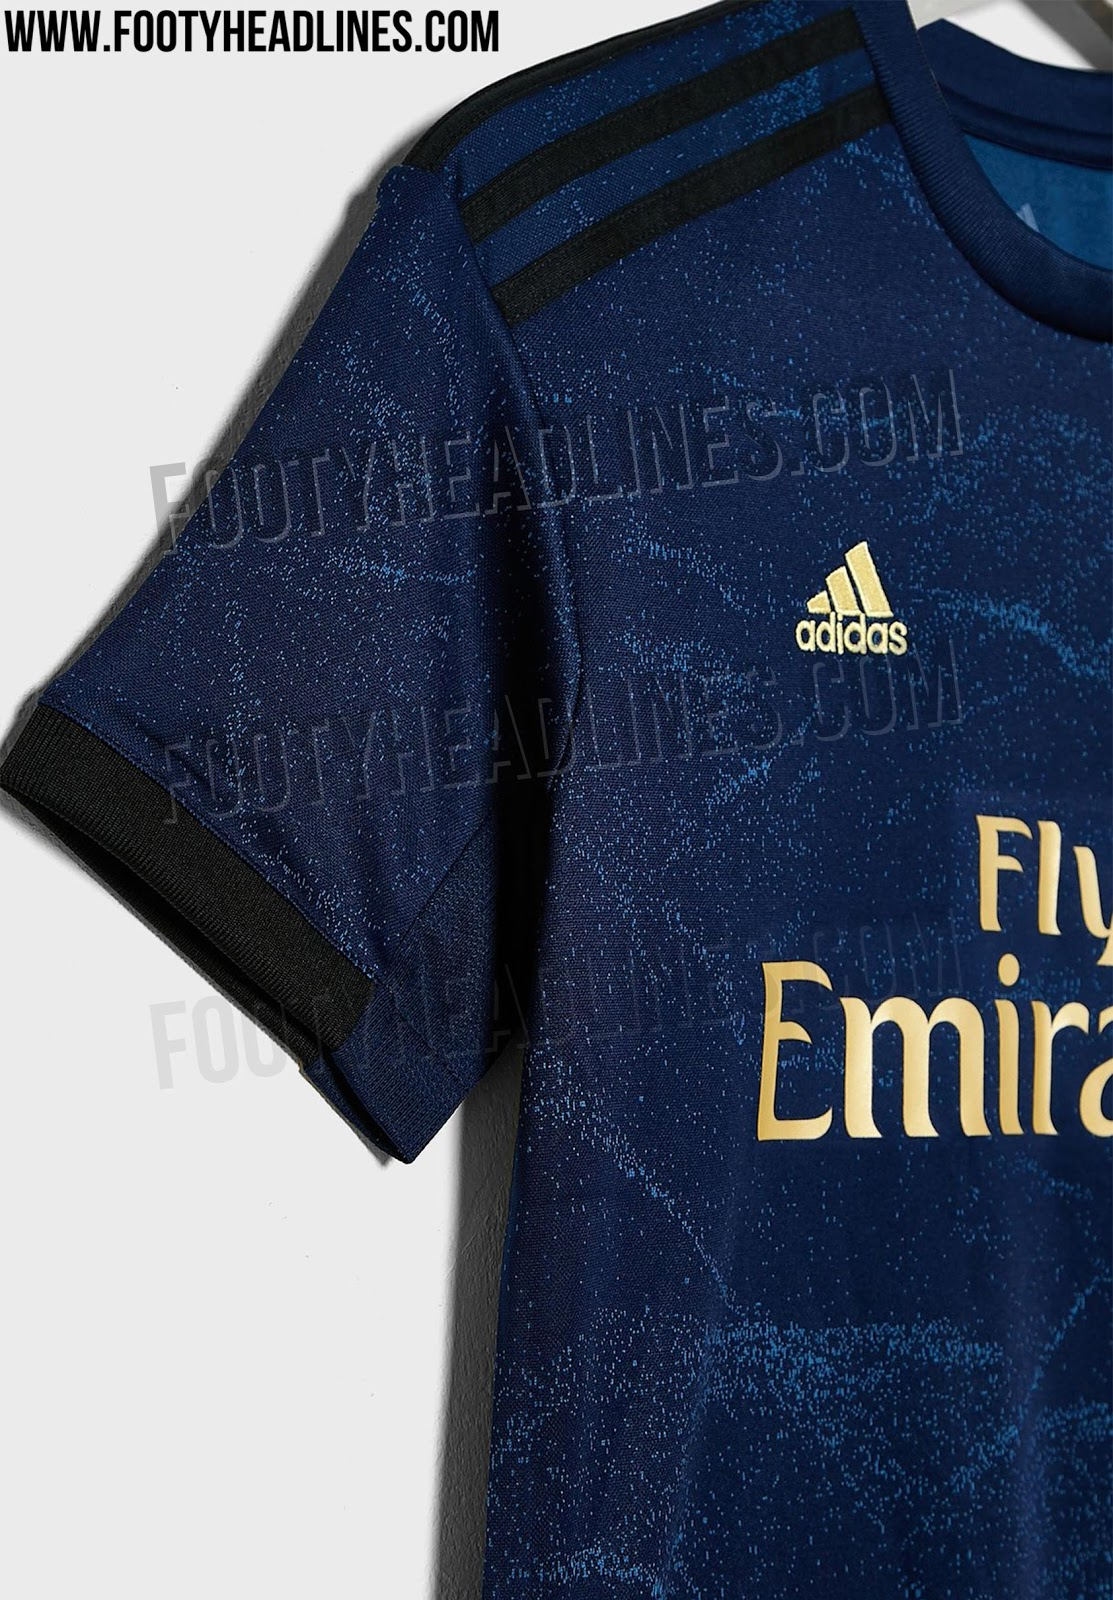 12d65994b The shorts and the socks of the new Real Madrid 2019-2020 away kit will be  navy   gold as well.